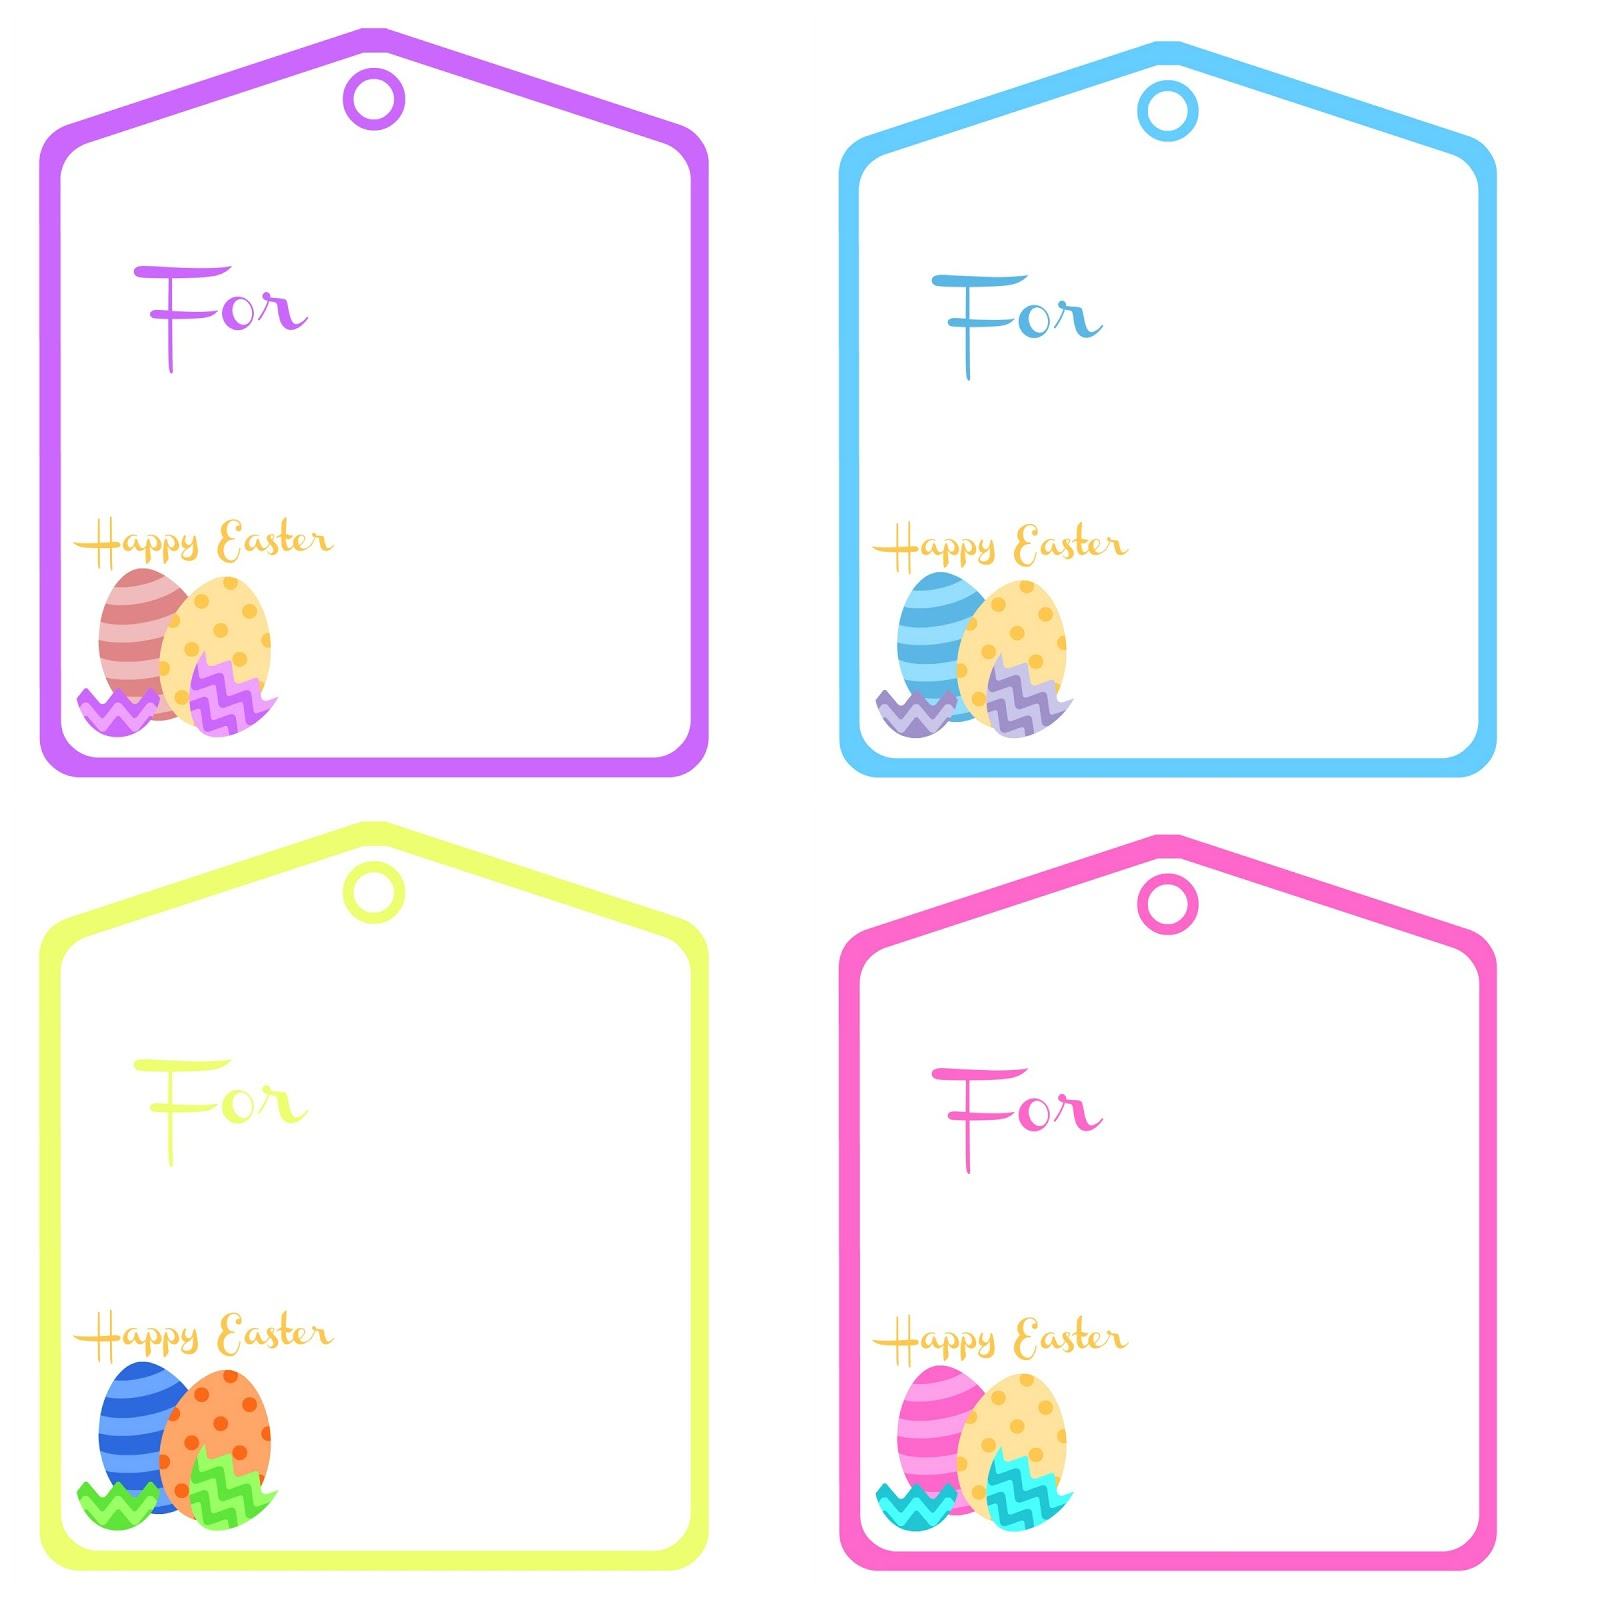 Free Printable Easter Basket Tags – Hd Easter Images - Free Printable Easter Basket Name Tags